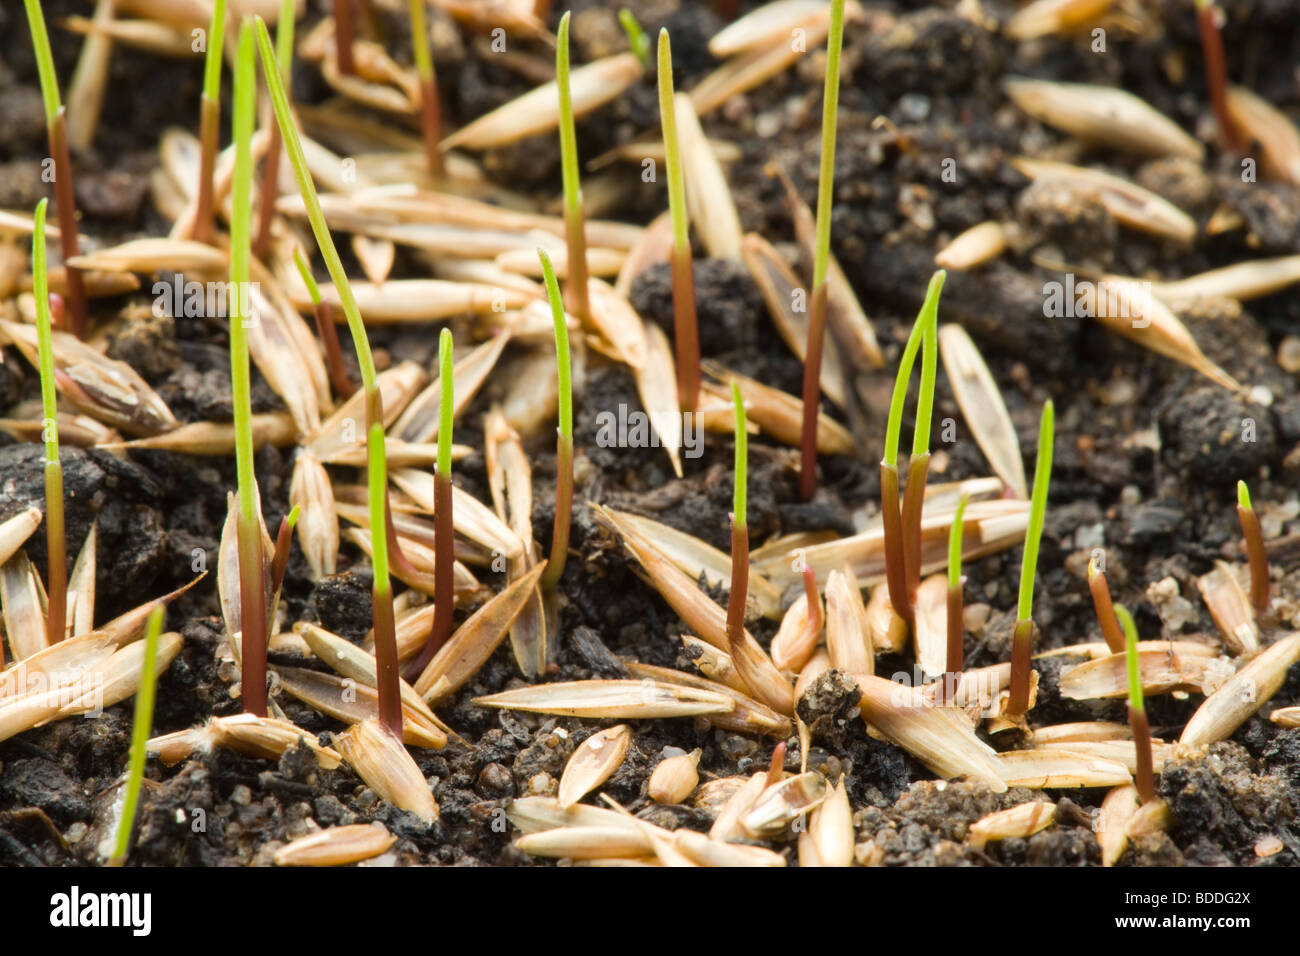 Grass seed germinating - Stock Image